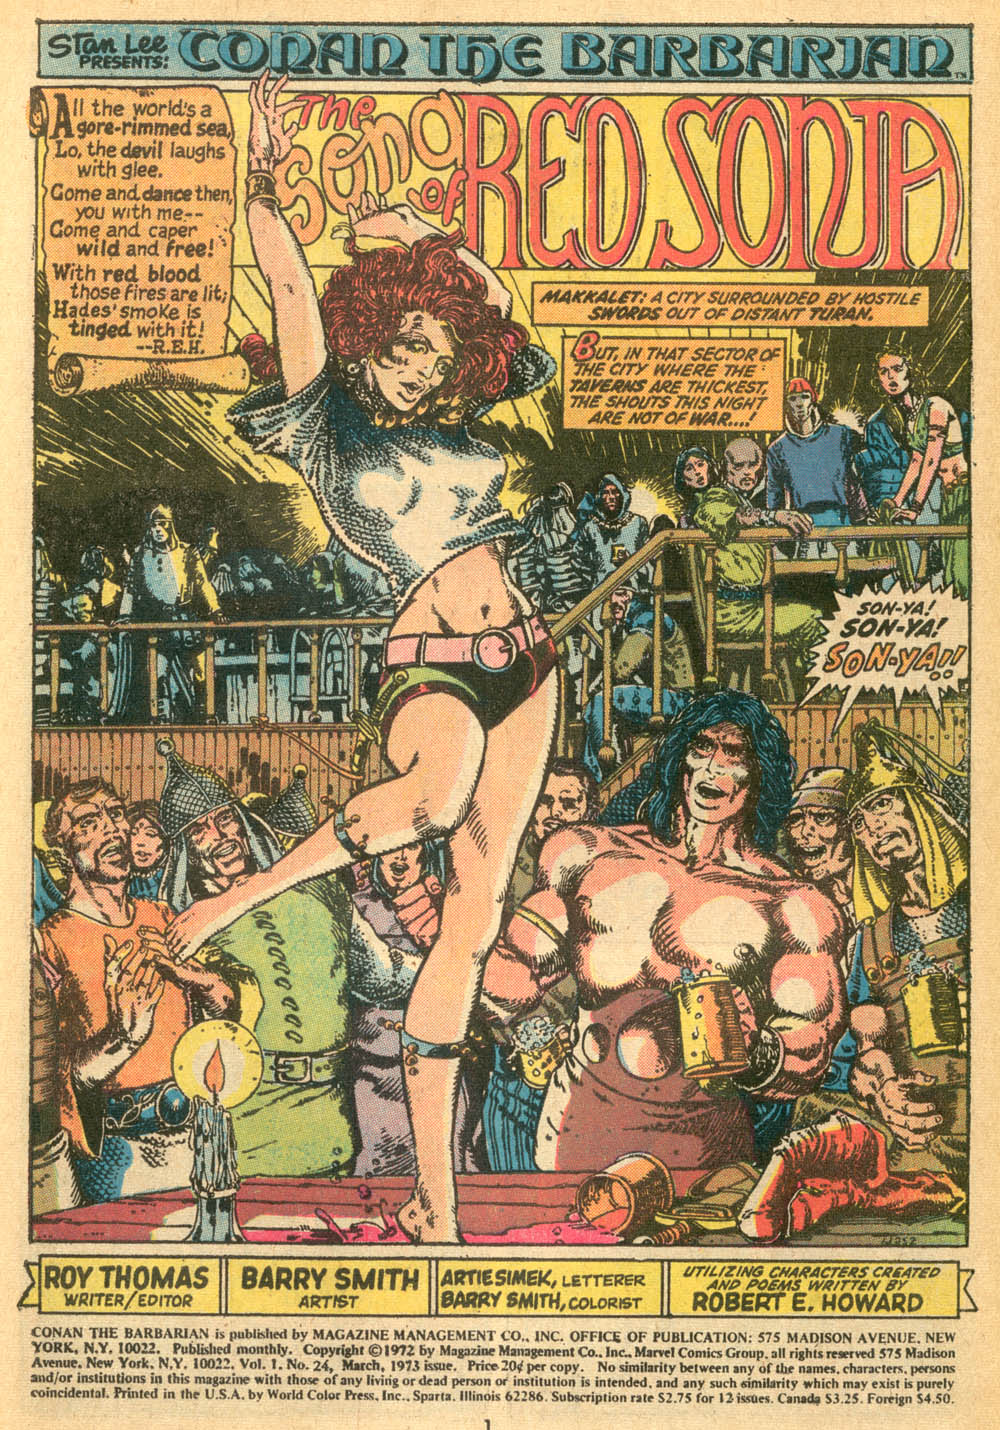 In 'Conan The Barbarian' (1973) #24, Red Sonja is drunk and dances in a bar in front of Conan and soldiers.